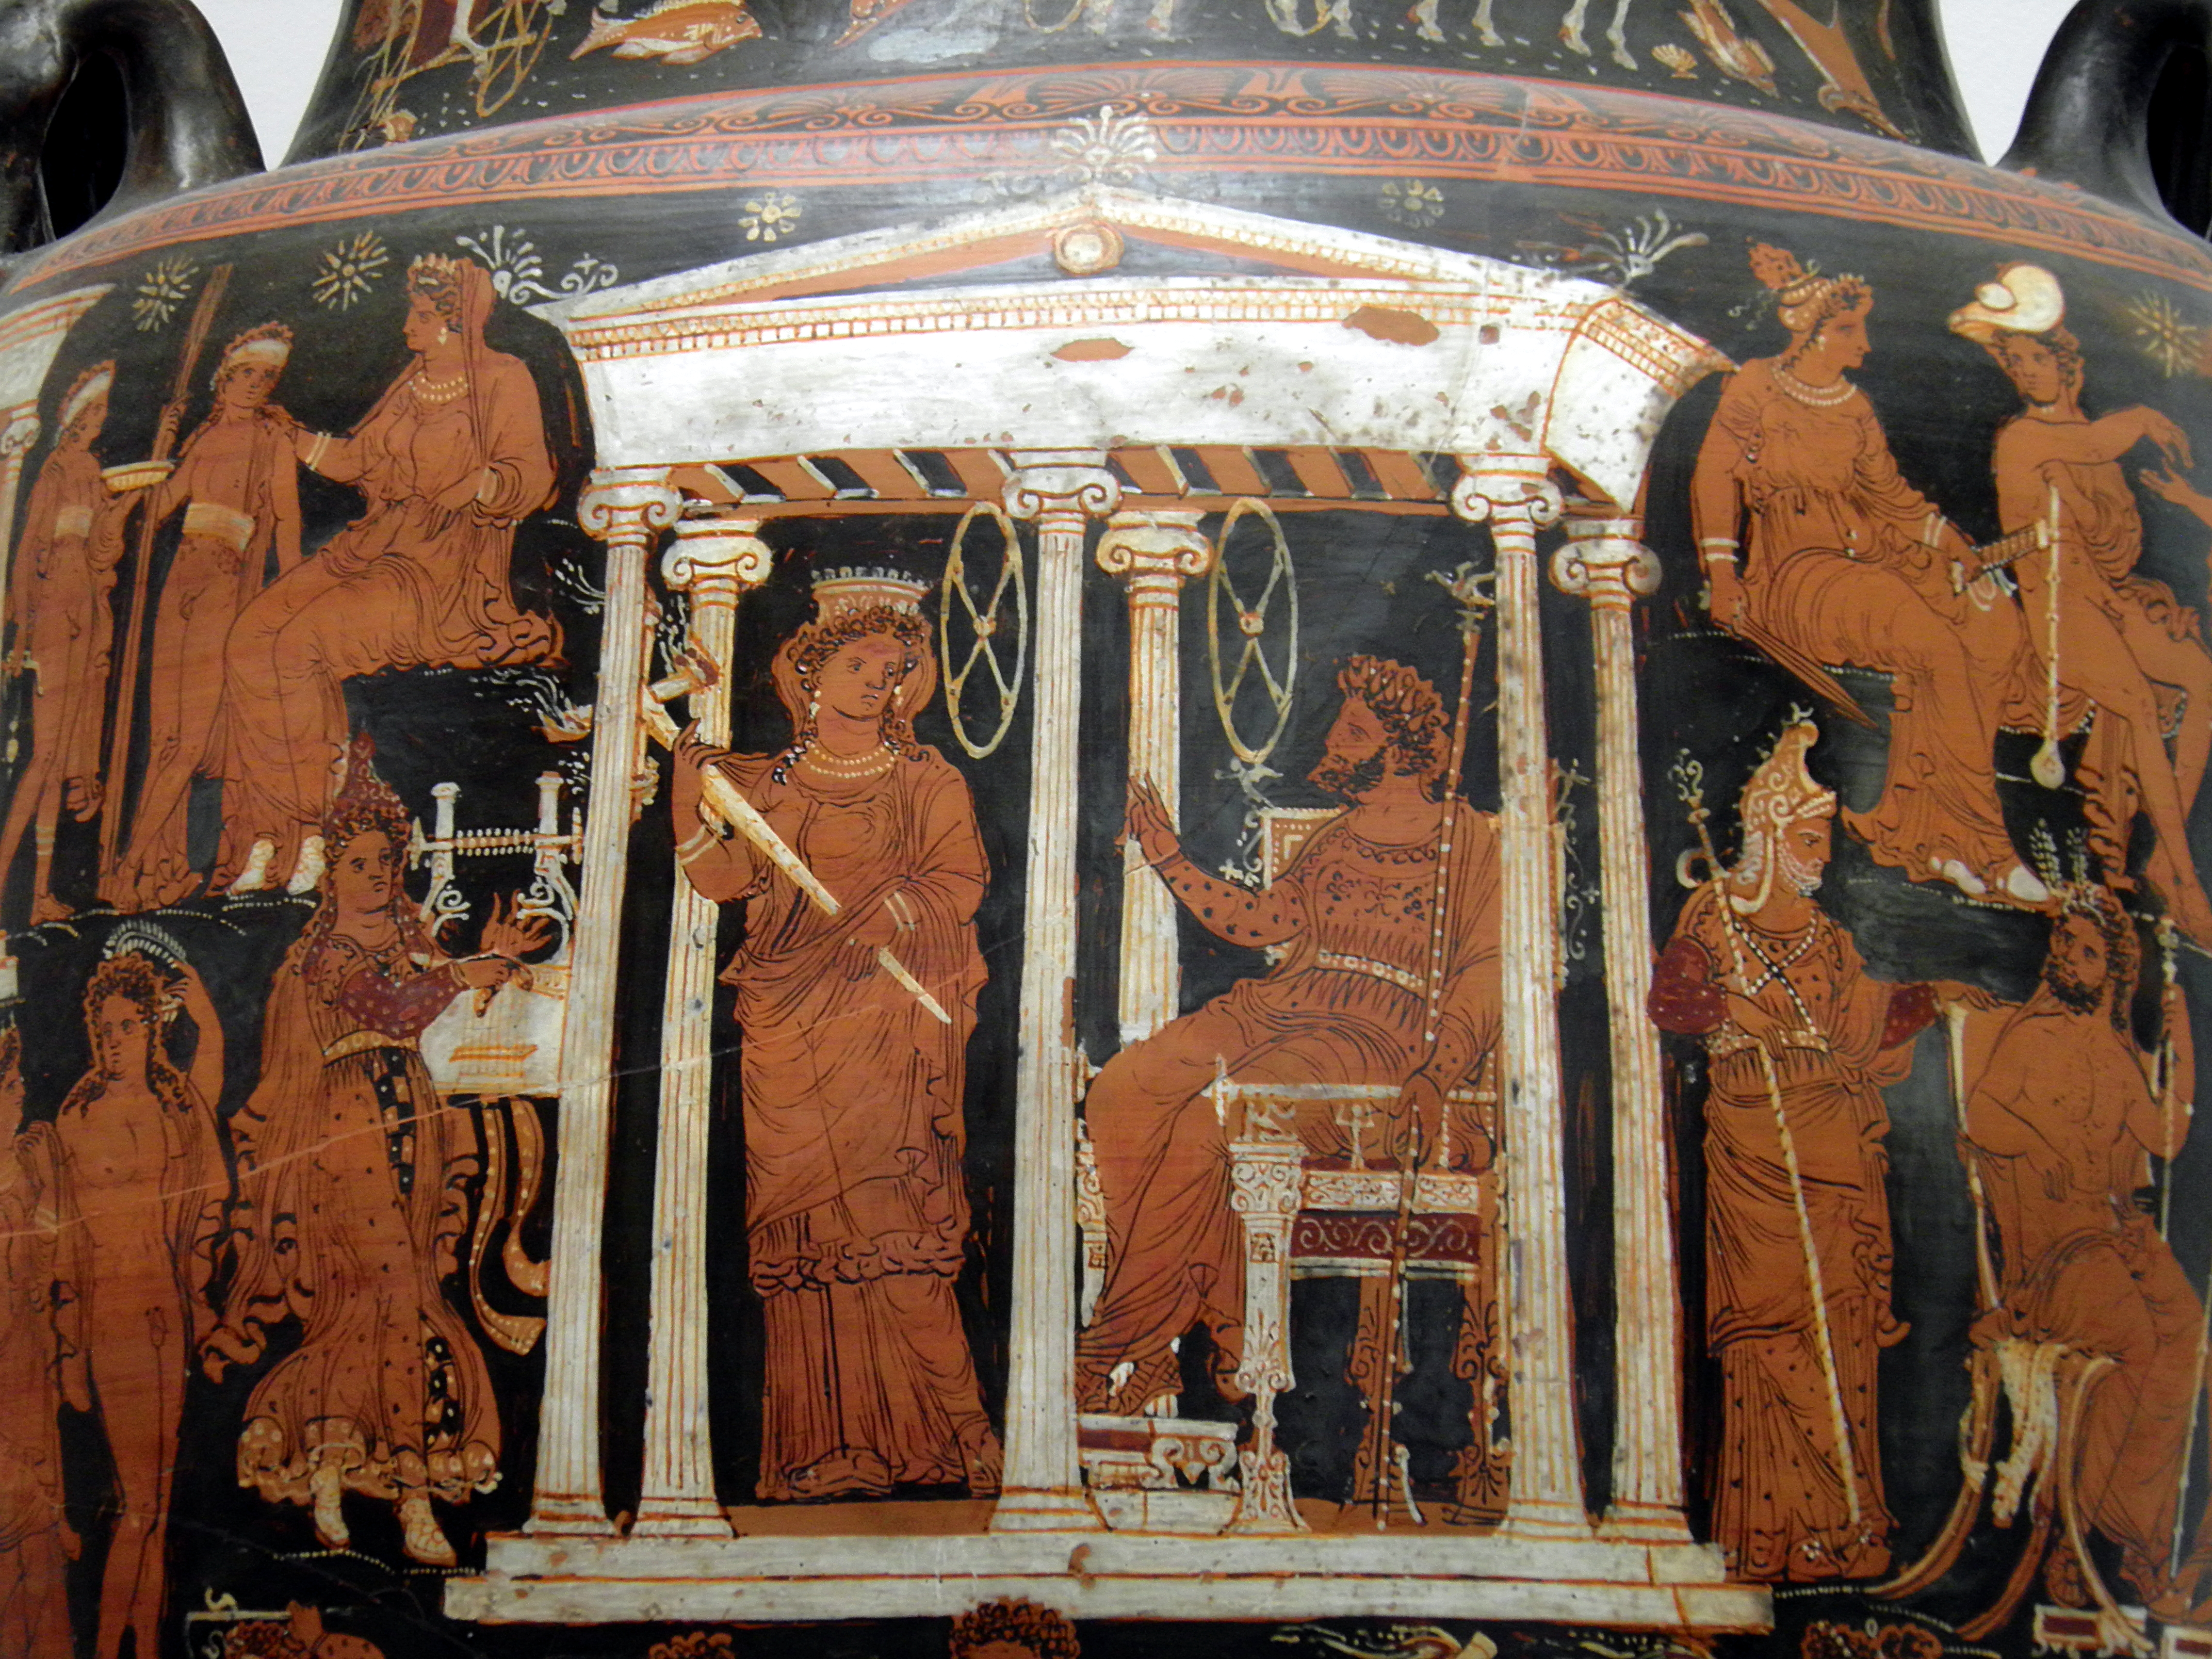 fileapulian redfigured volute krater with scenes of the